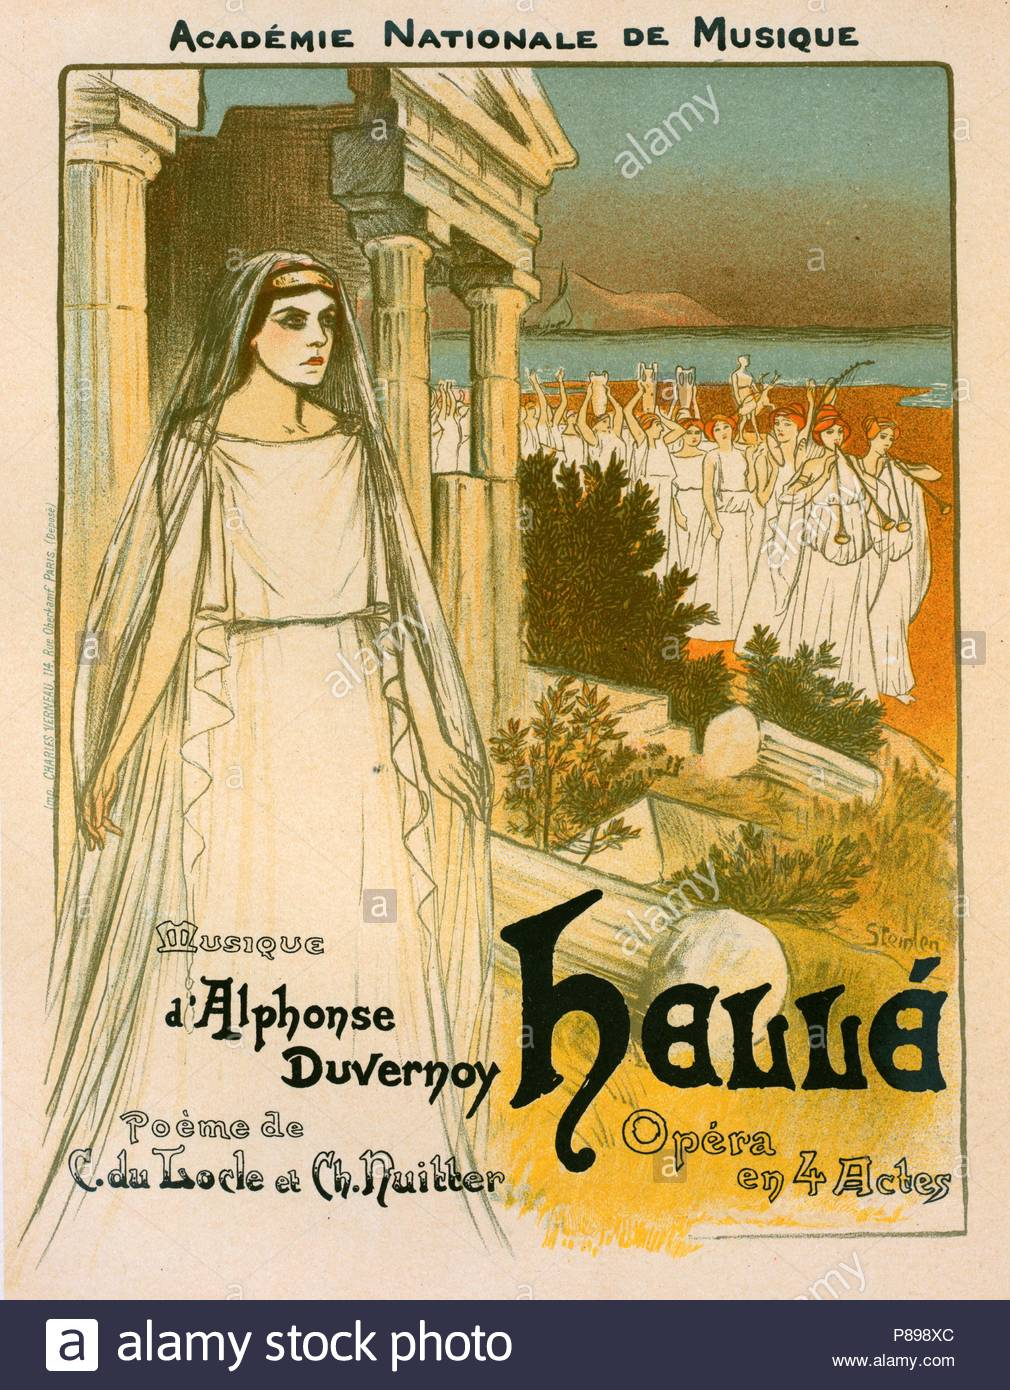 Poster for l'opéra Hellé, représenté au Théâtre national de l'Opéra, Théophile Alexandre Steinlen, frequently referred to as just Steinlen 1859 – 1923, a Swiss-born French Art Nouveau painter and printmaker. - Stock Image